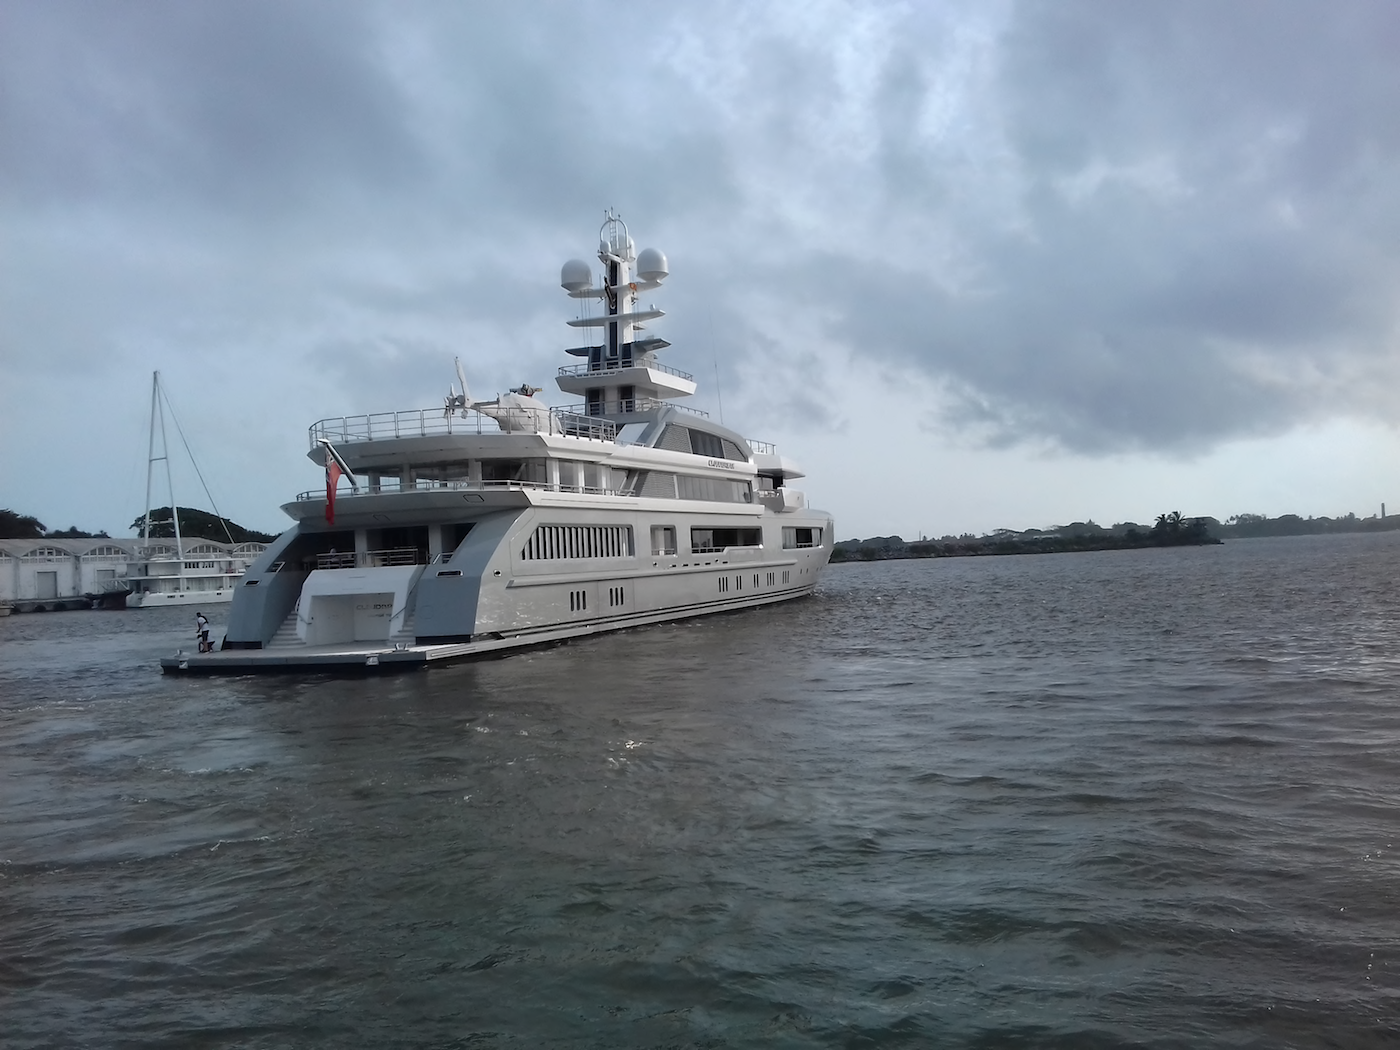 Charter Yacht Cloudbreak on her way following stopover